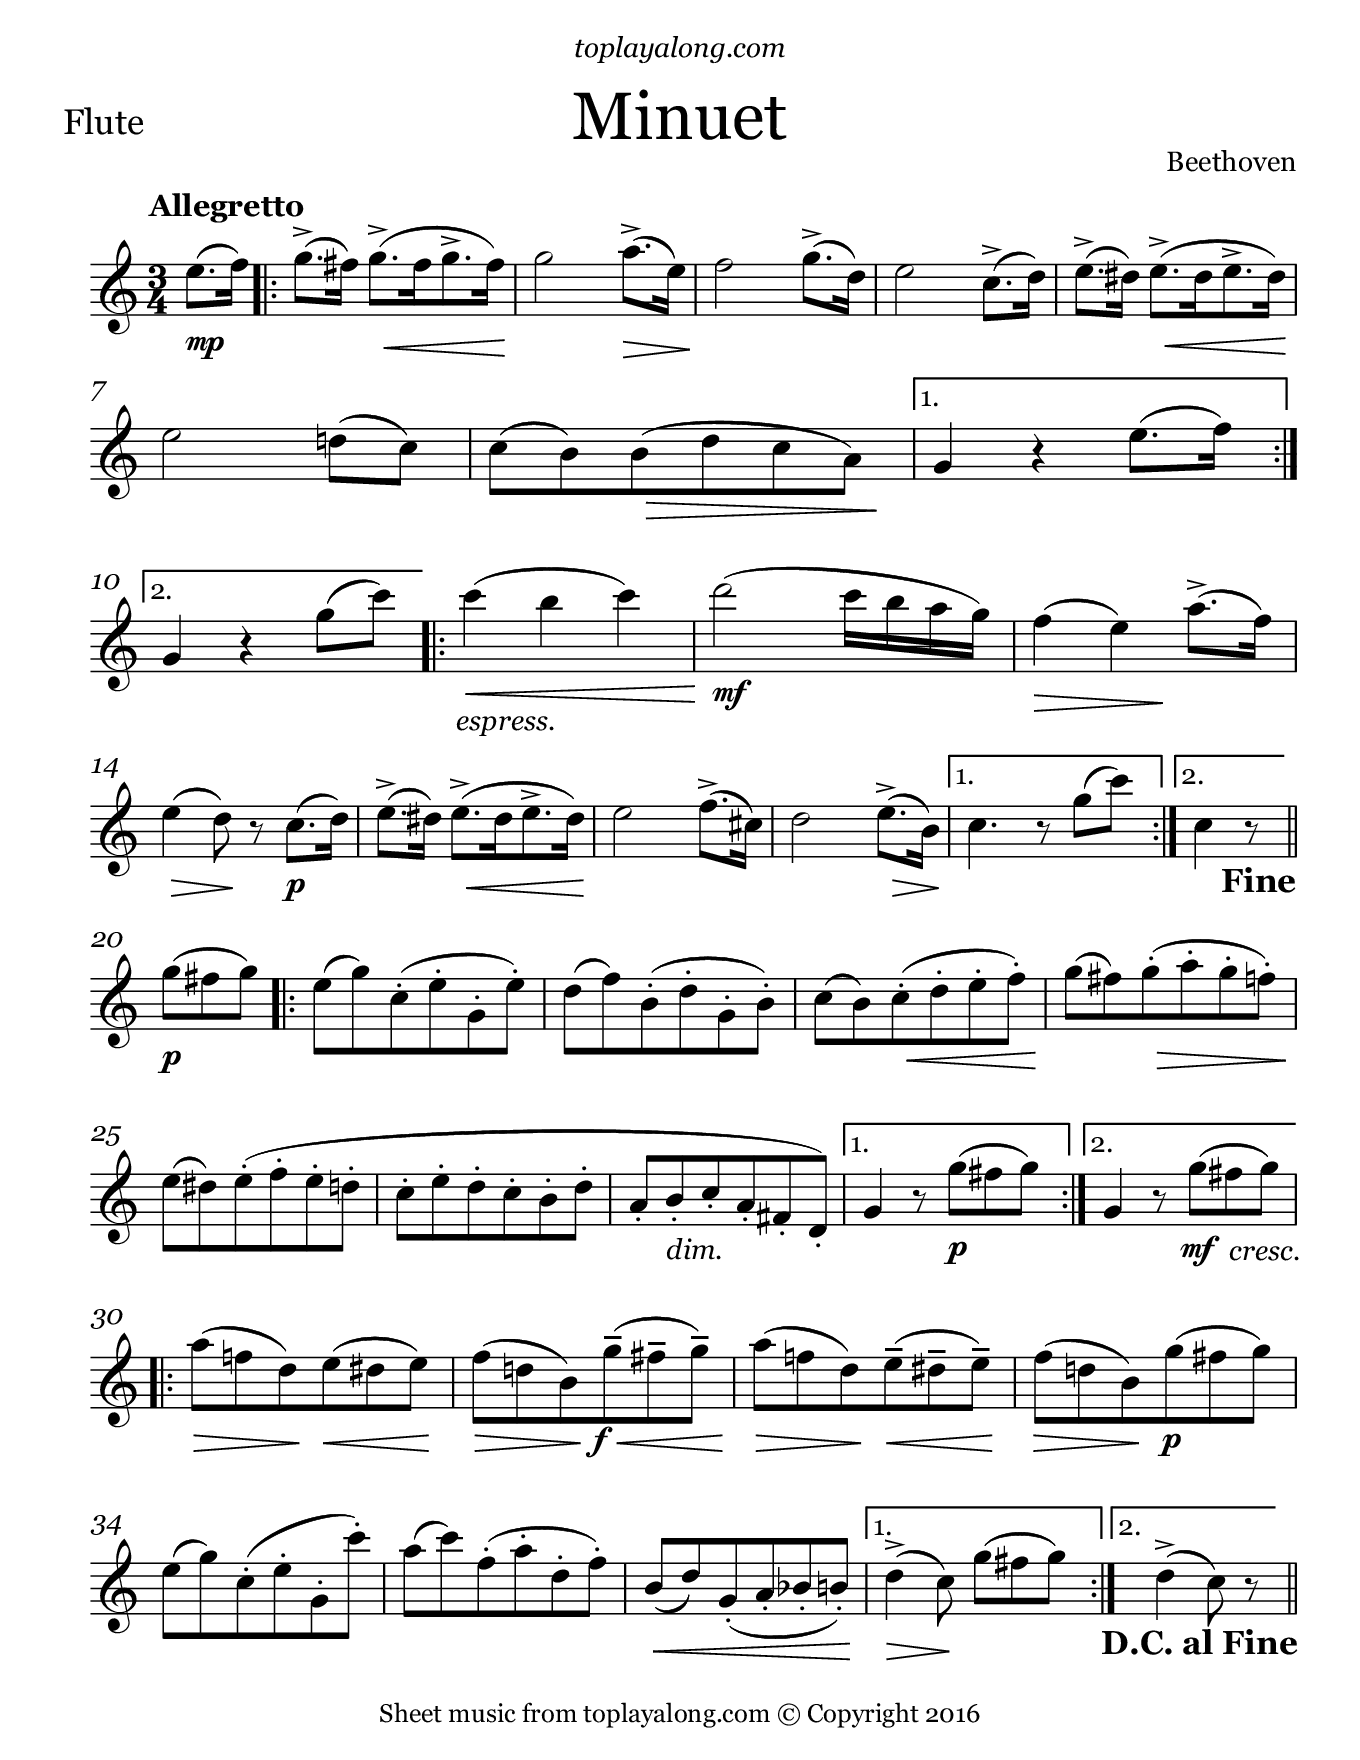 Minuet by Beethoven. Sheet music for Flute, page 1.